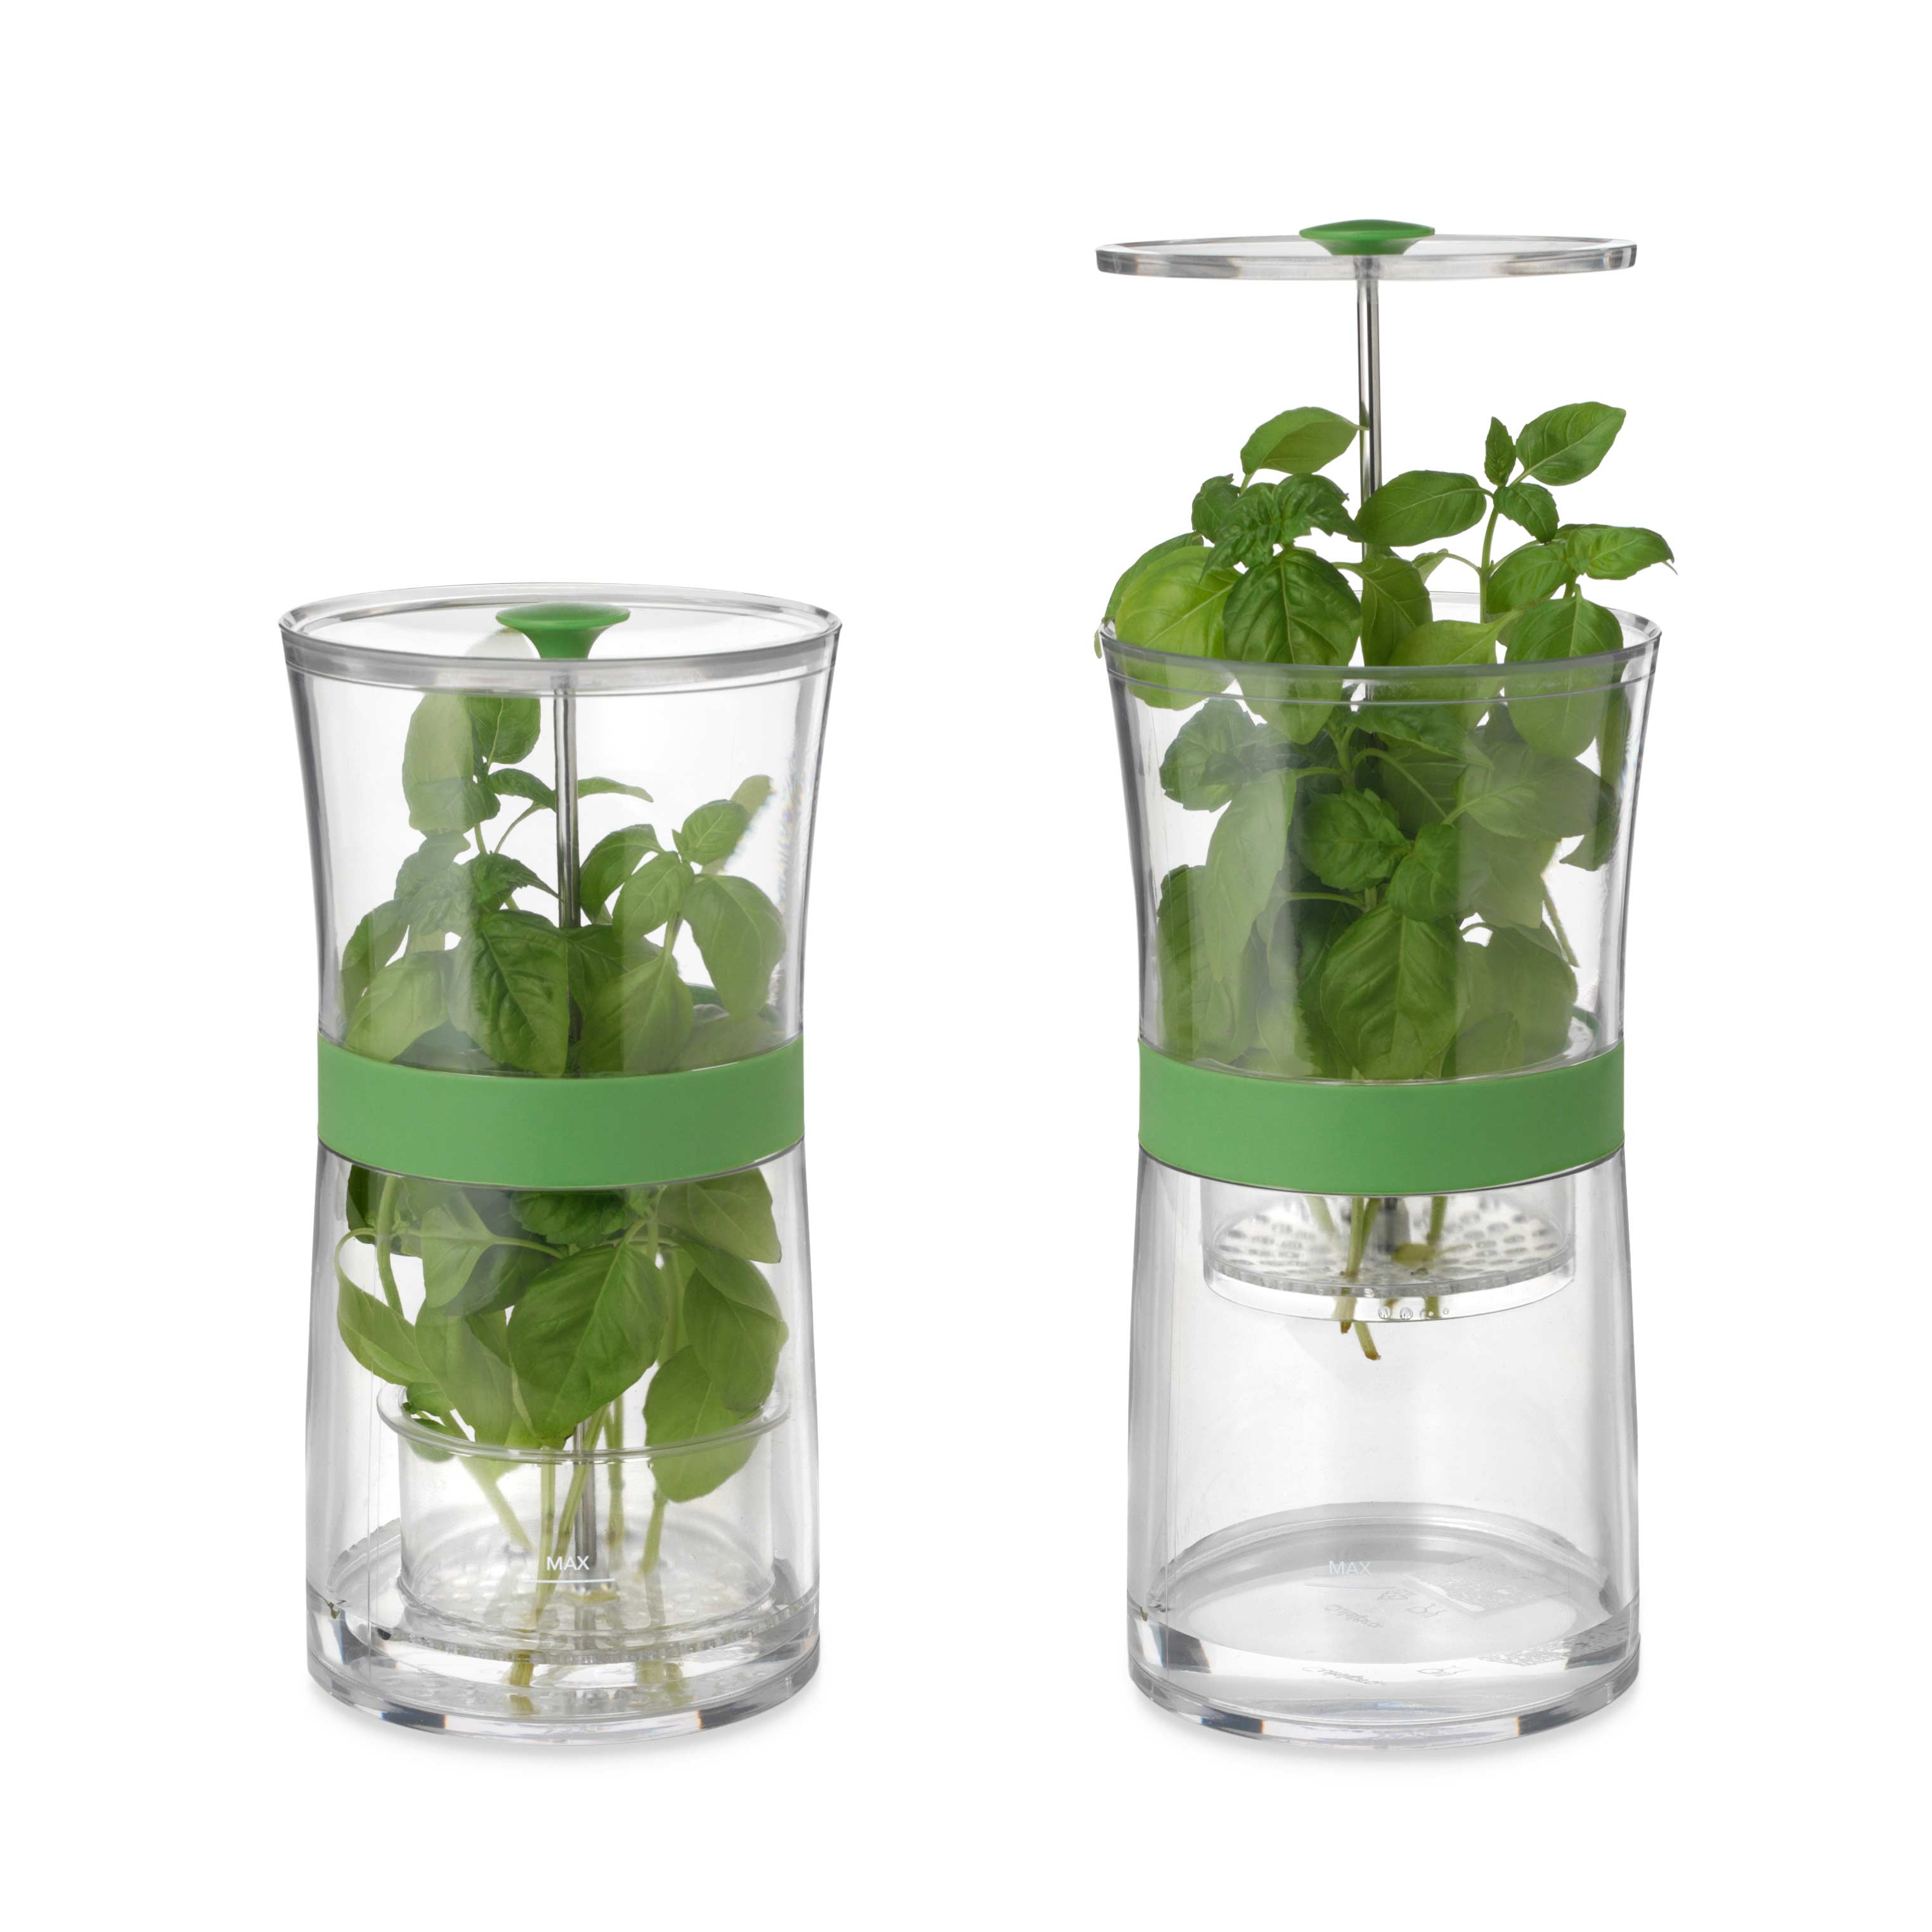 More cooking questions about herb storage and some utensils?